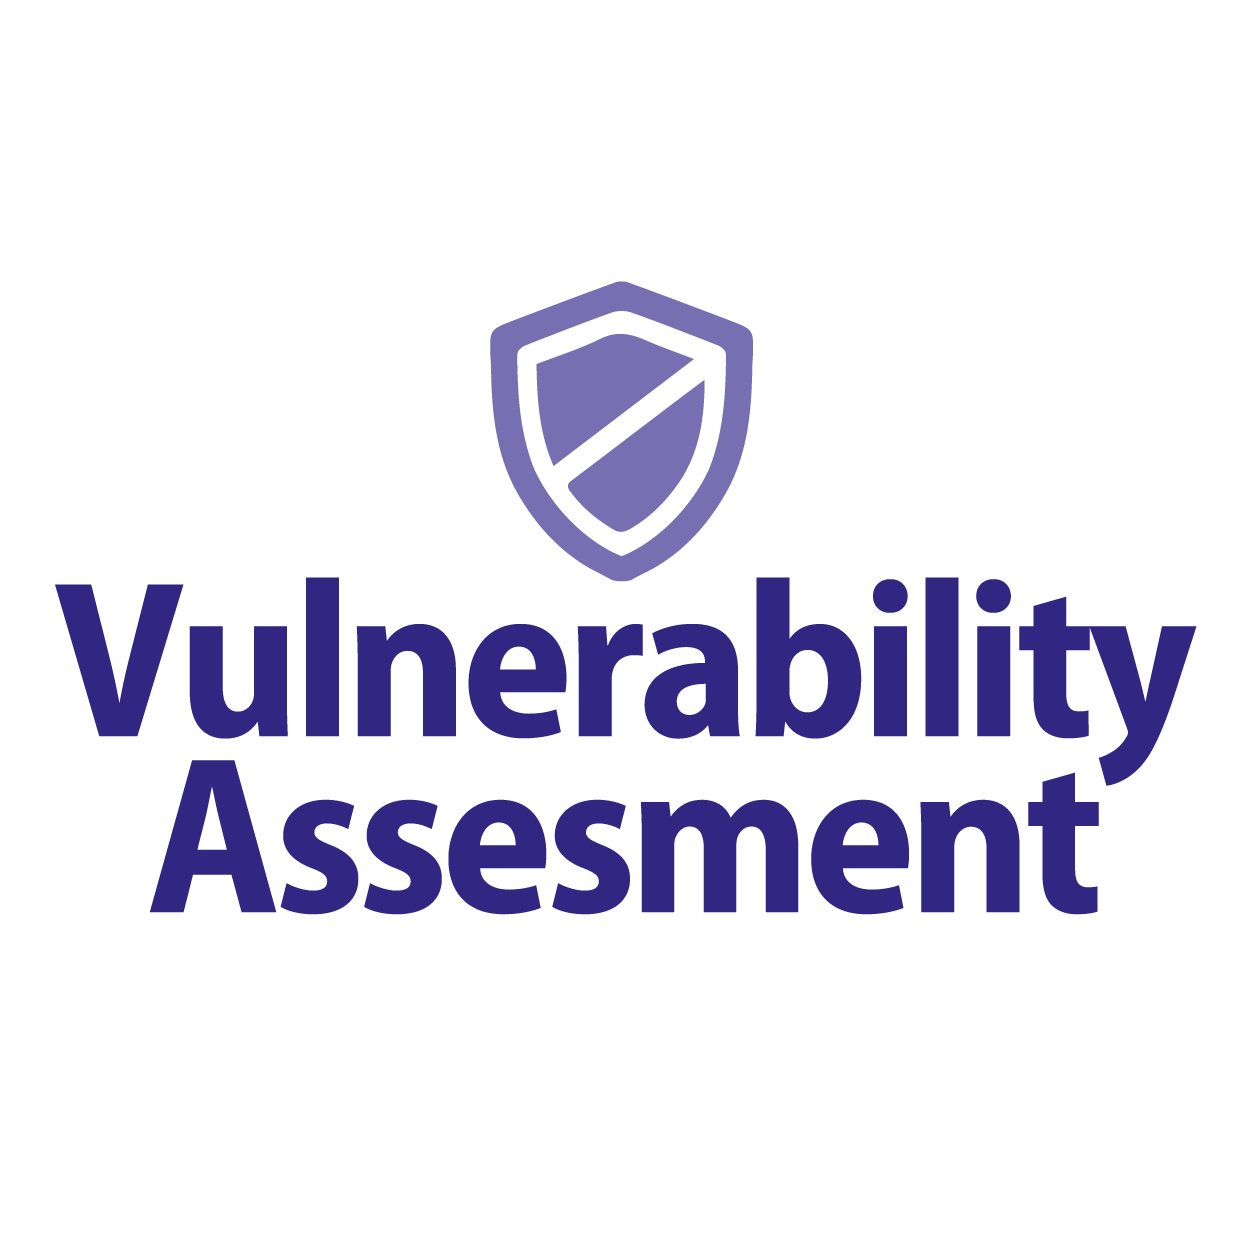 Cyber security vulnerability assessment